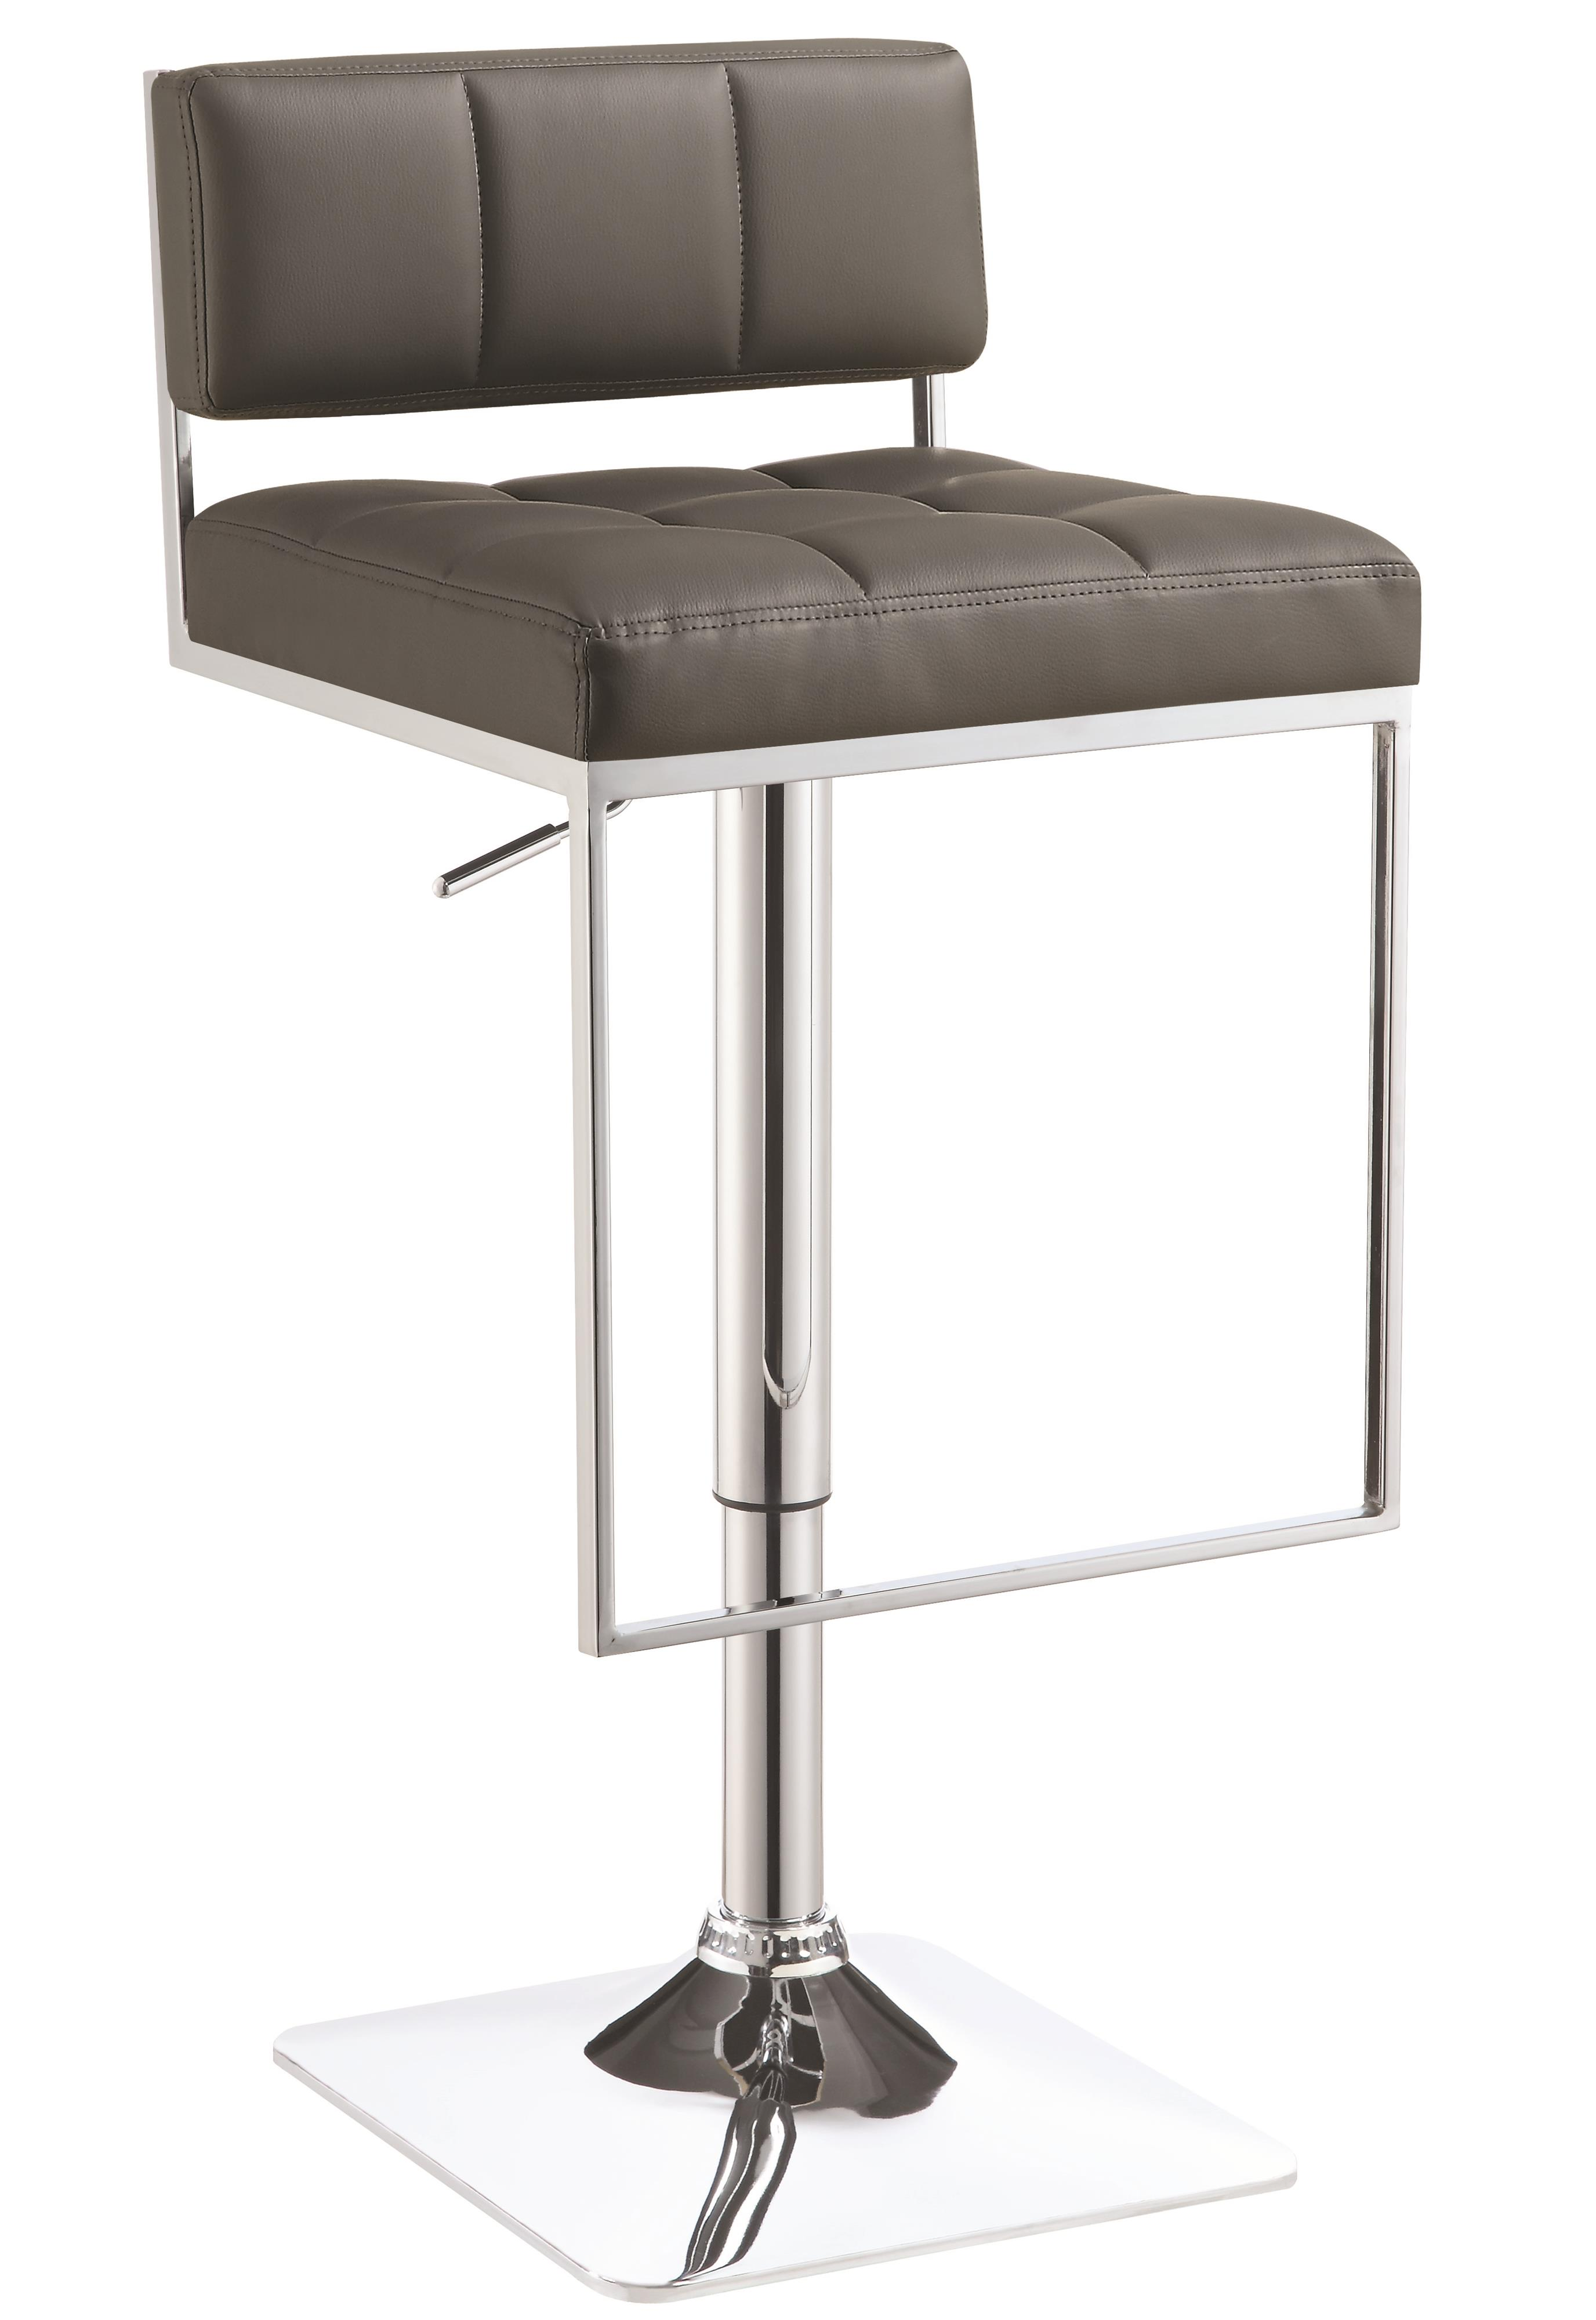 Dining Chairs and Bar Stools Adjustable Bar Stool by Coaster at Northeast Factory Direct